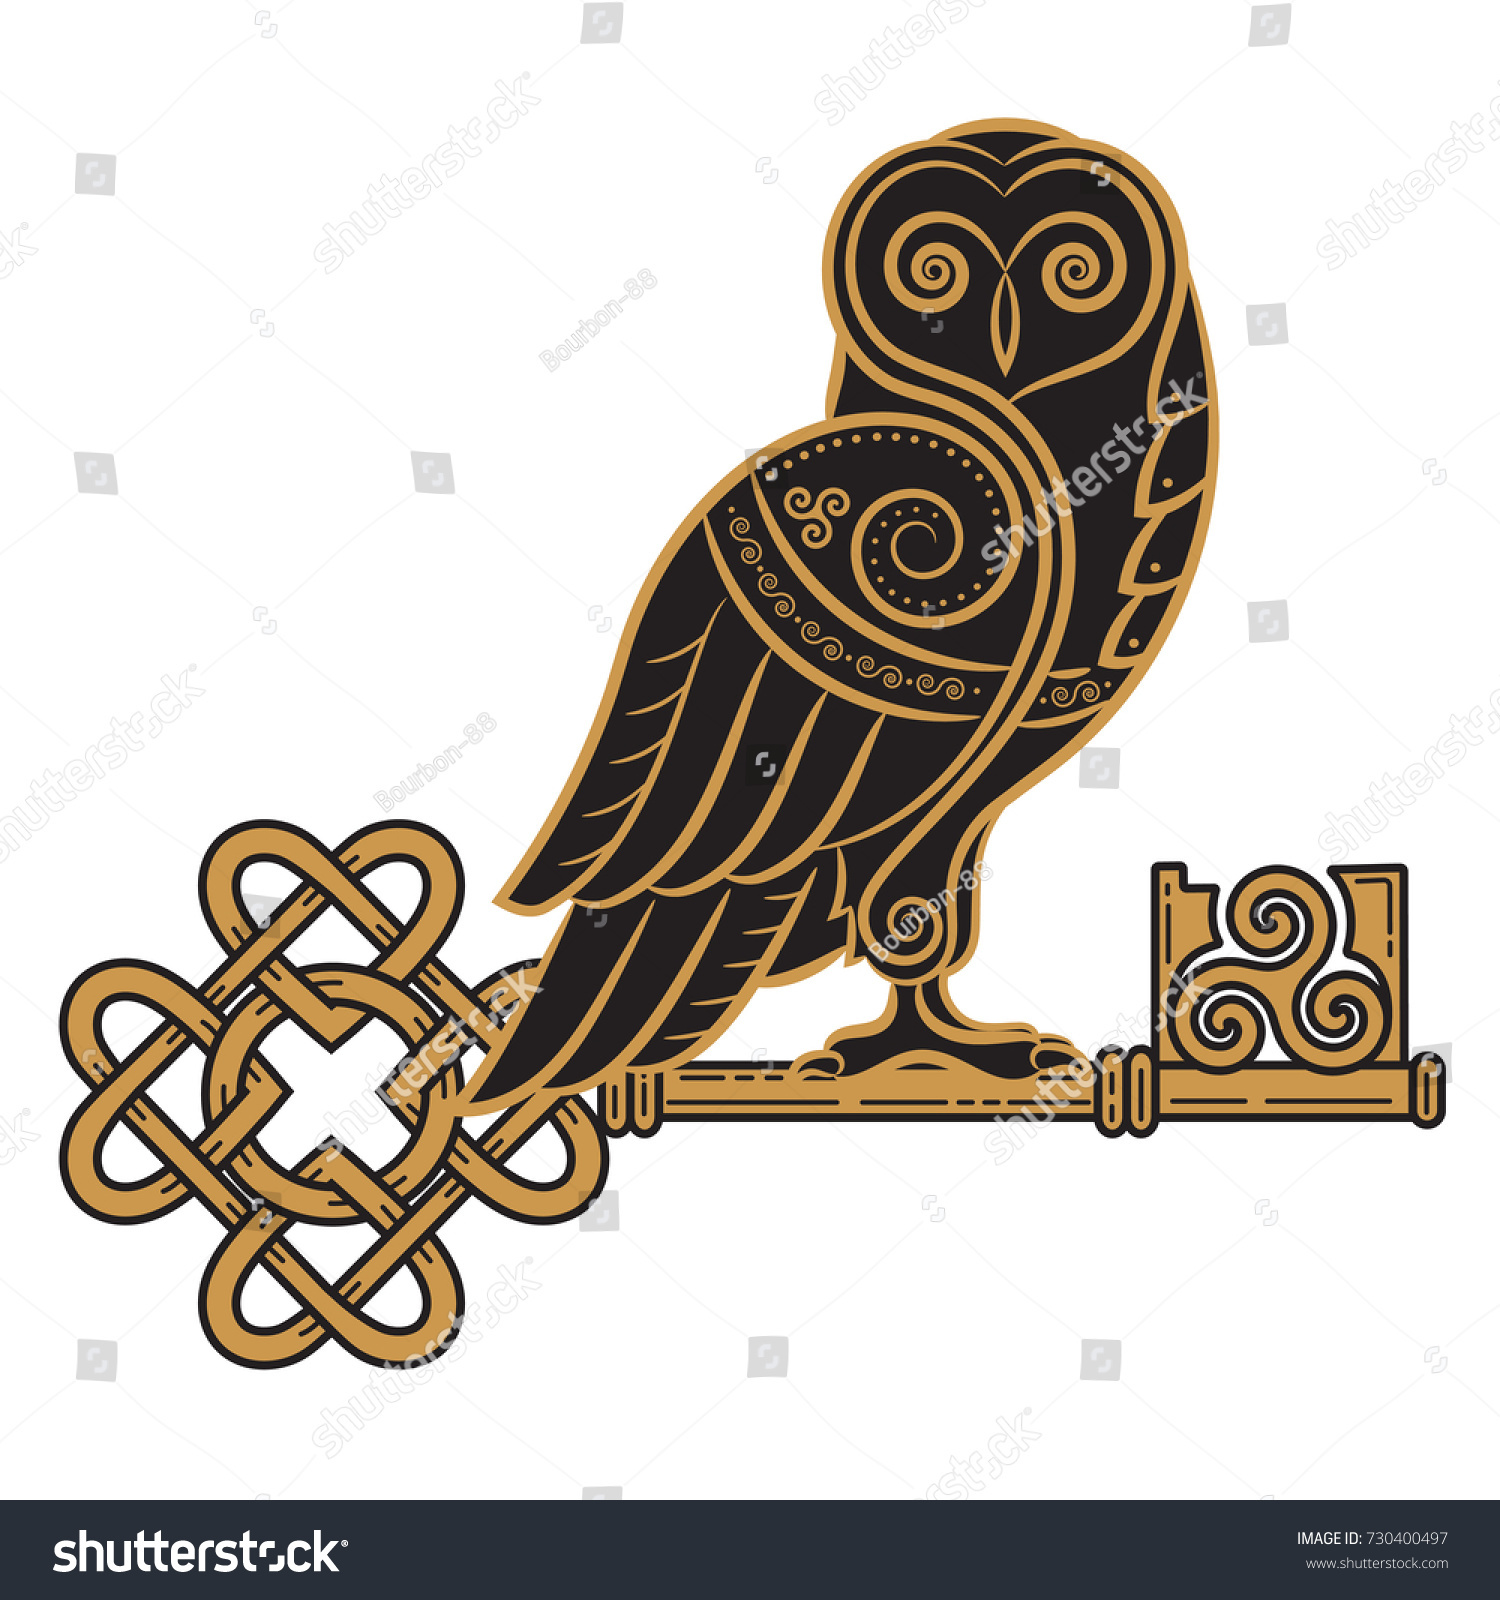 The Celtic Design Owl And Key In Style A Symbol Of Wisdom